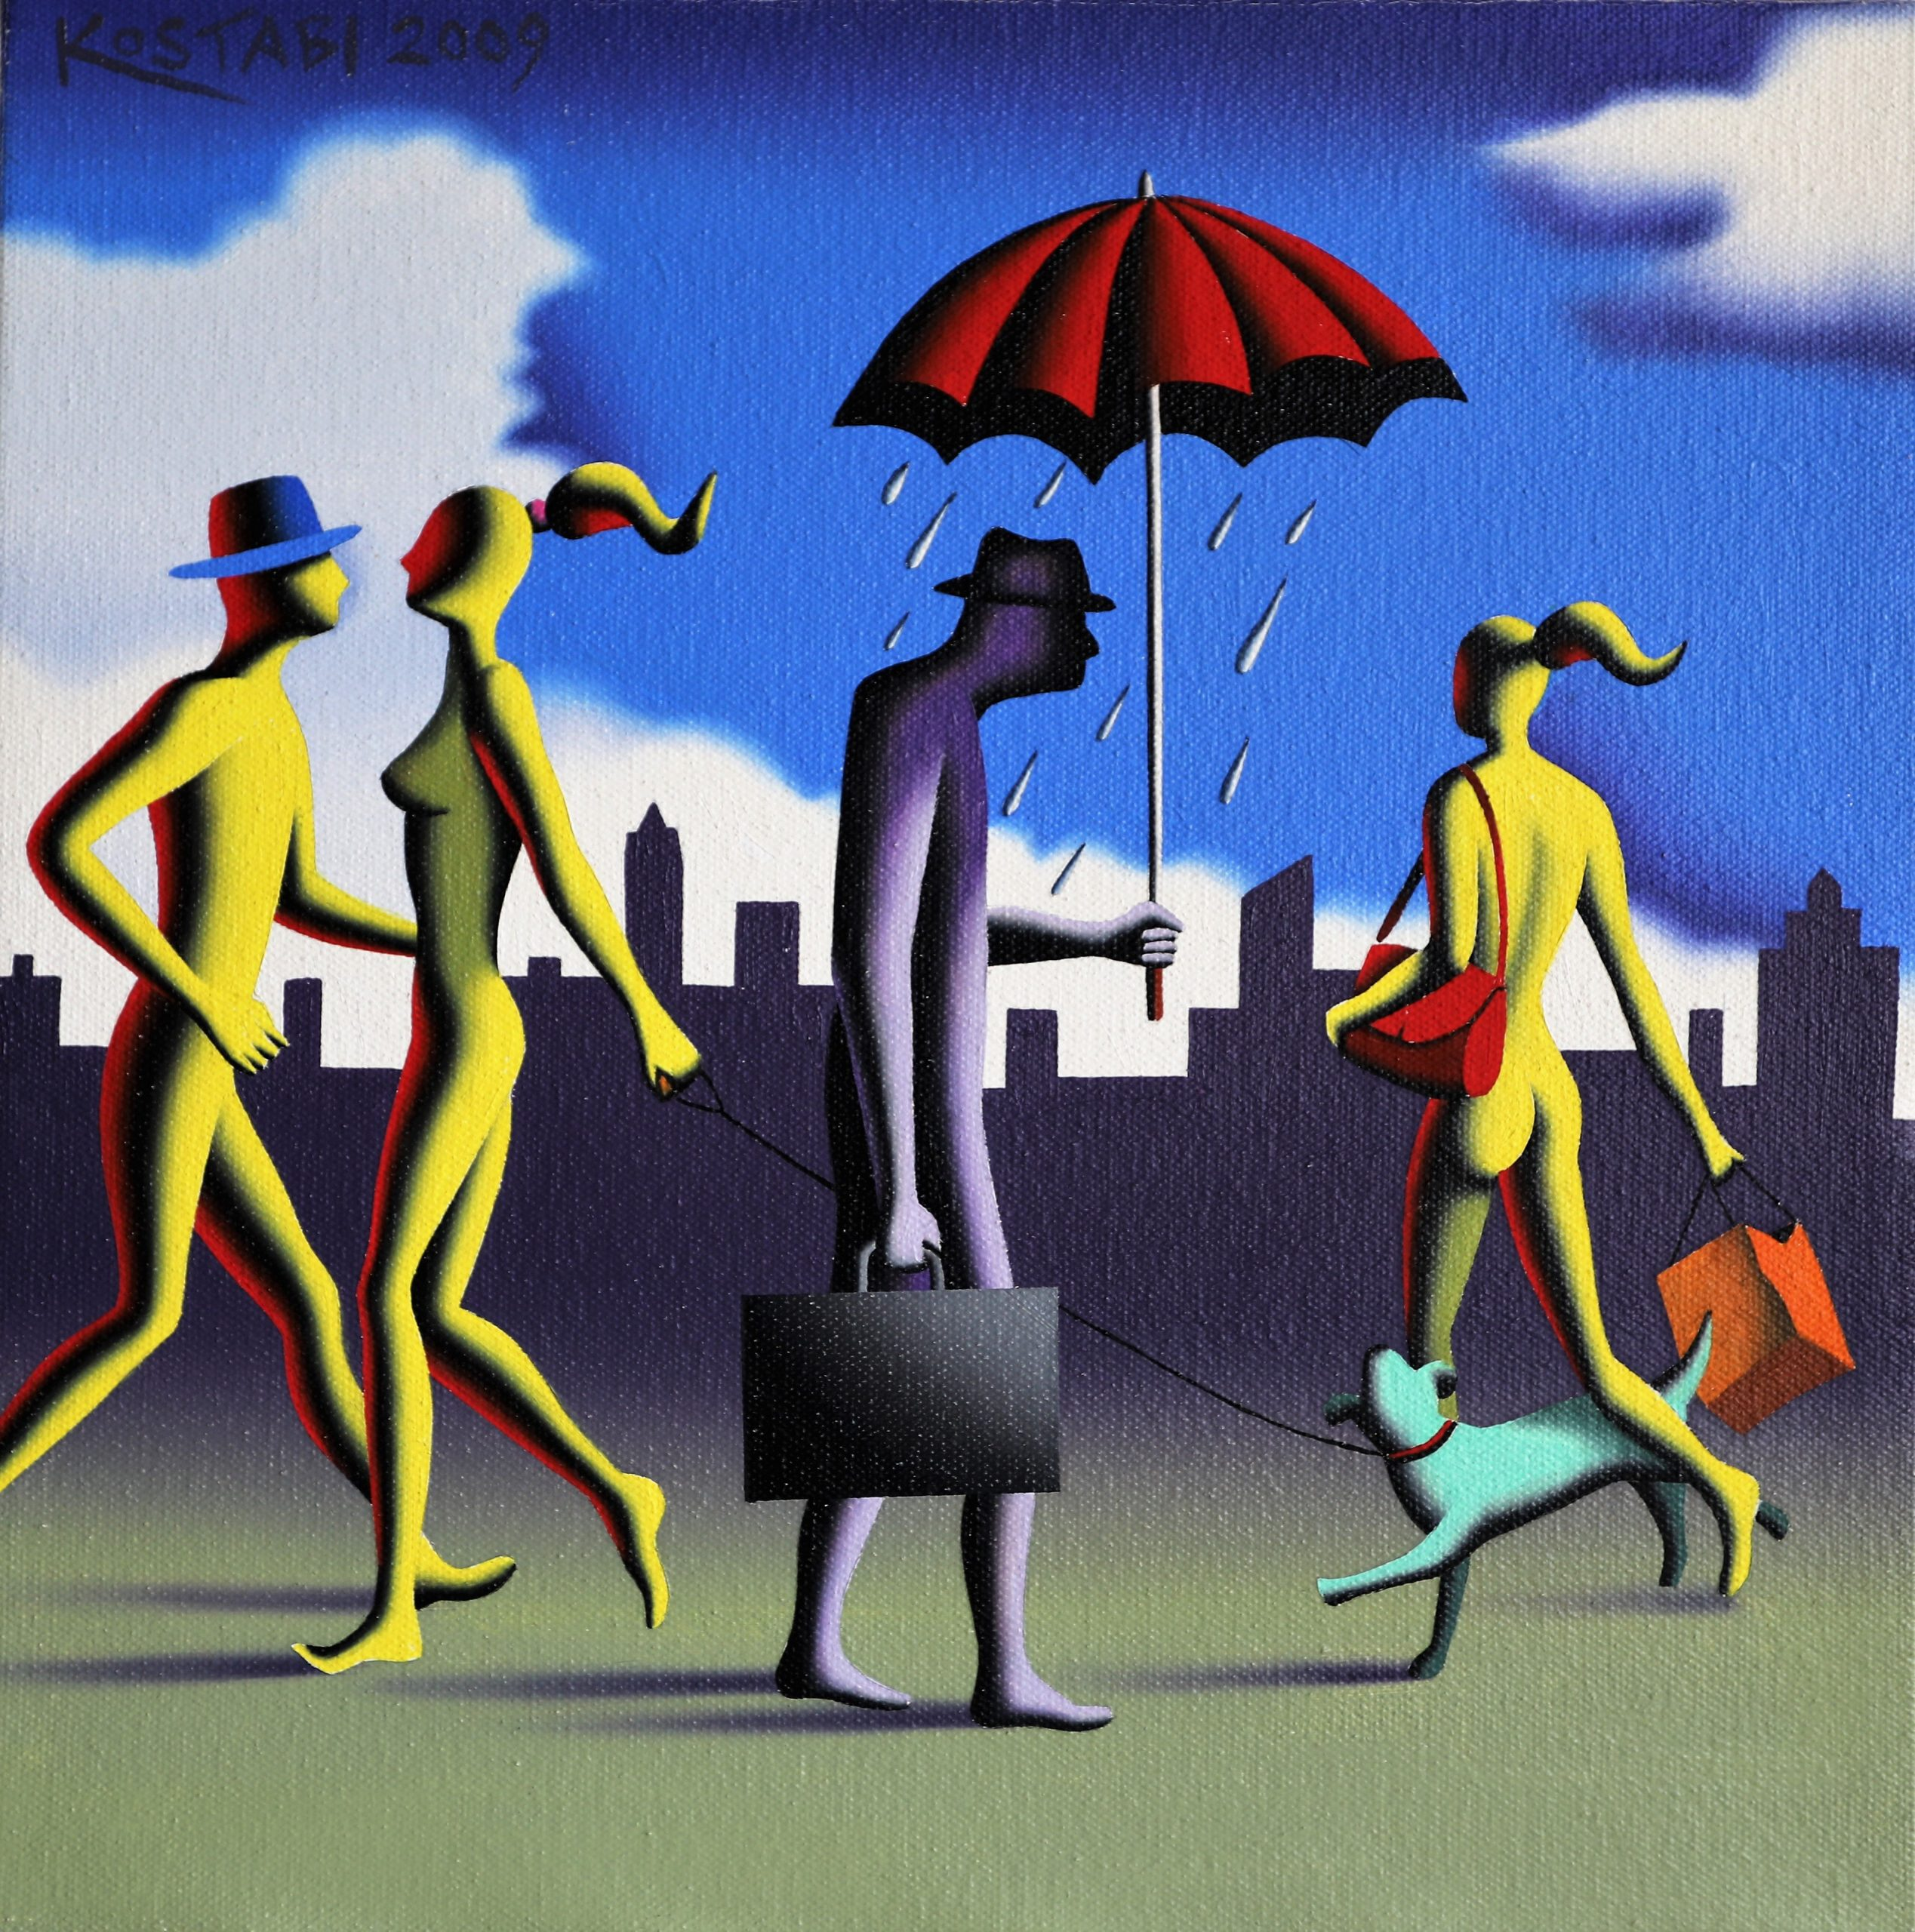 mark-kostabi-canvas-gallery-milan-italy